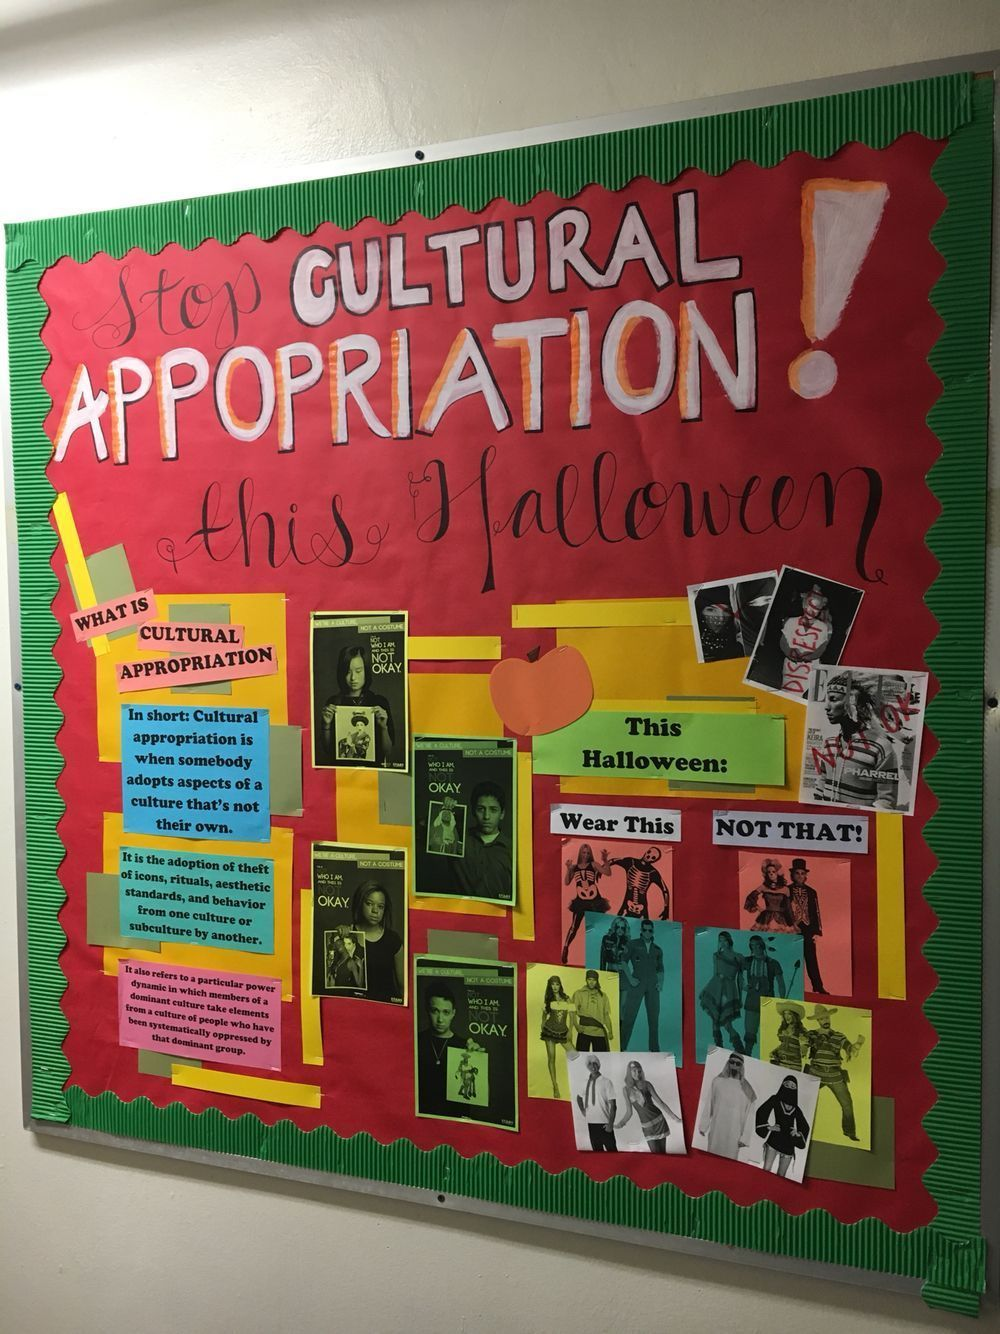 October RA Cultural Appropriation Halloween board for Resident Assistants and Bulletin Board programs #octoberbulletinboards October RA Cultural Appropriation Halloween board for Resident Assistants and Bulletin Board programs #halloweenbulletinboards October RA Cultural Appropriation Halloween board for Resident Assistants and Bulletin Board programs #octoberbulletinboards October RA Cultural Appropriation Halloween board for Resident Assistants and Bulletin Board programs #rabulletinboards Oct #octoberbulletinboards